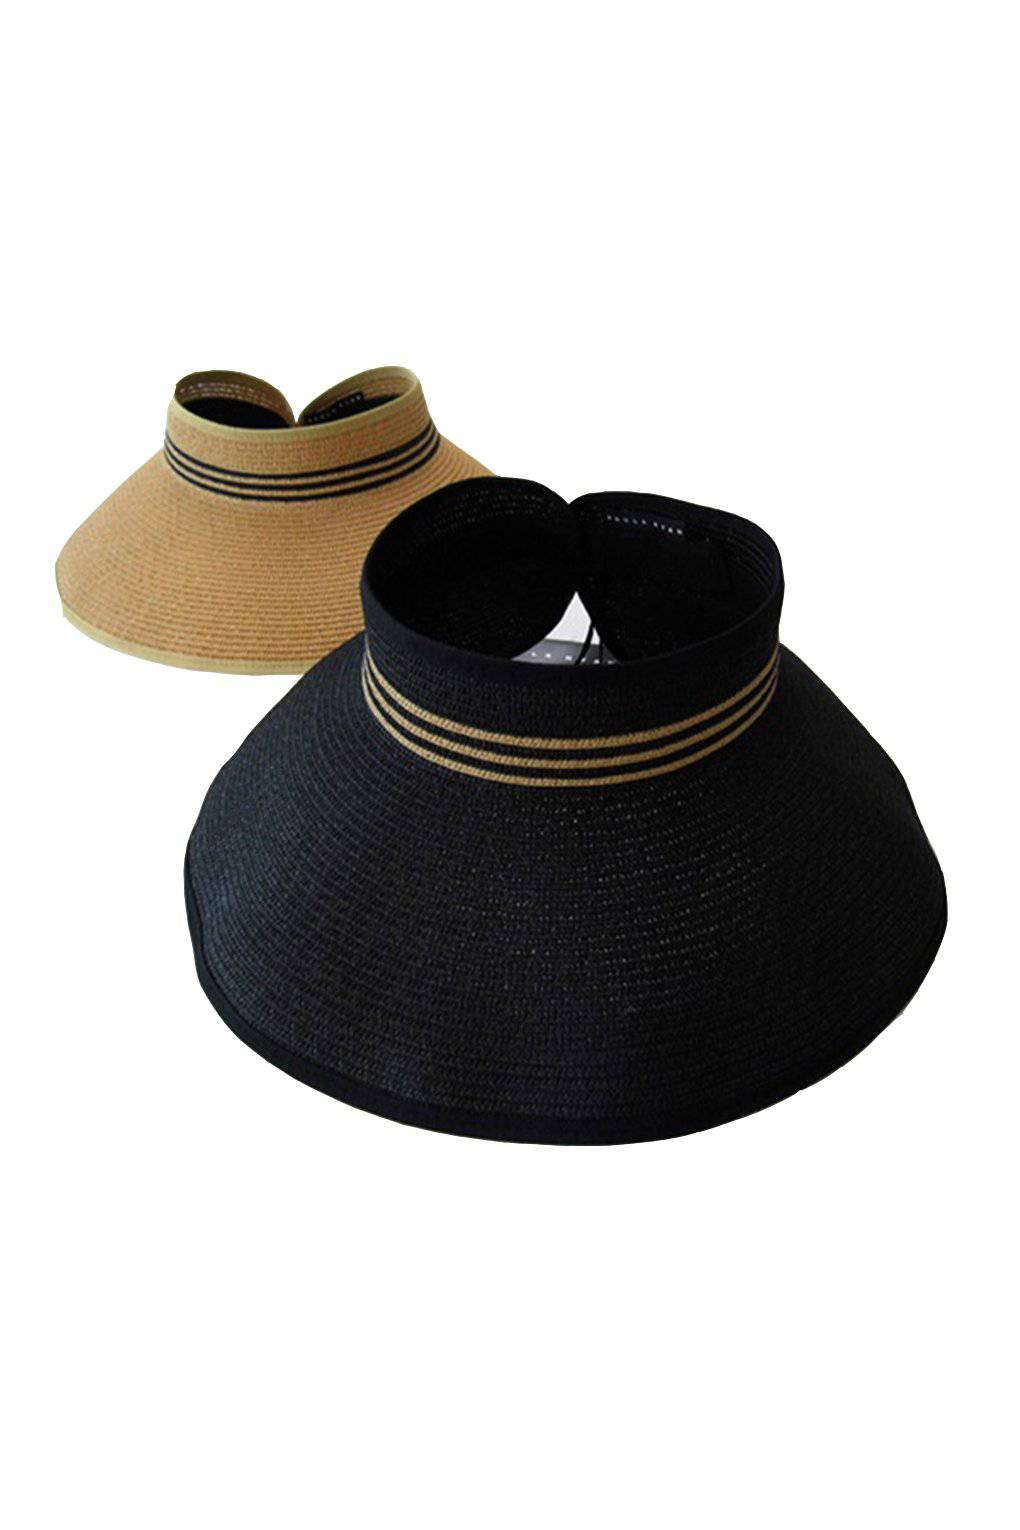 PAULA RYAN Sunhat - Accessories - Paula Ryan Accessories - Paula Ryan